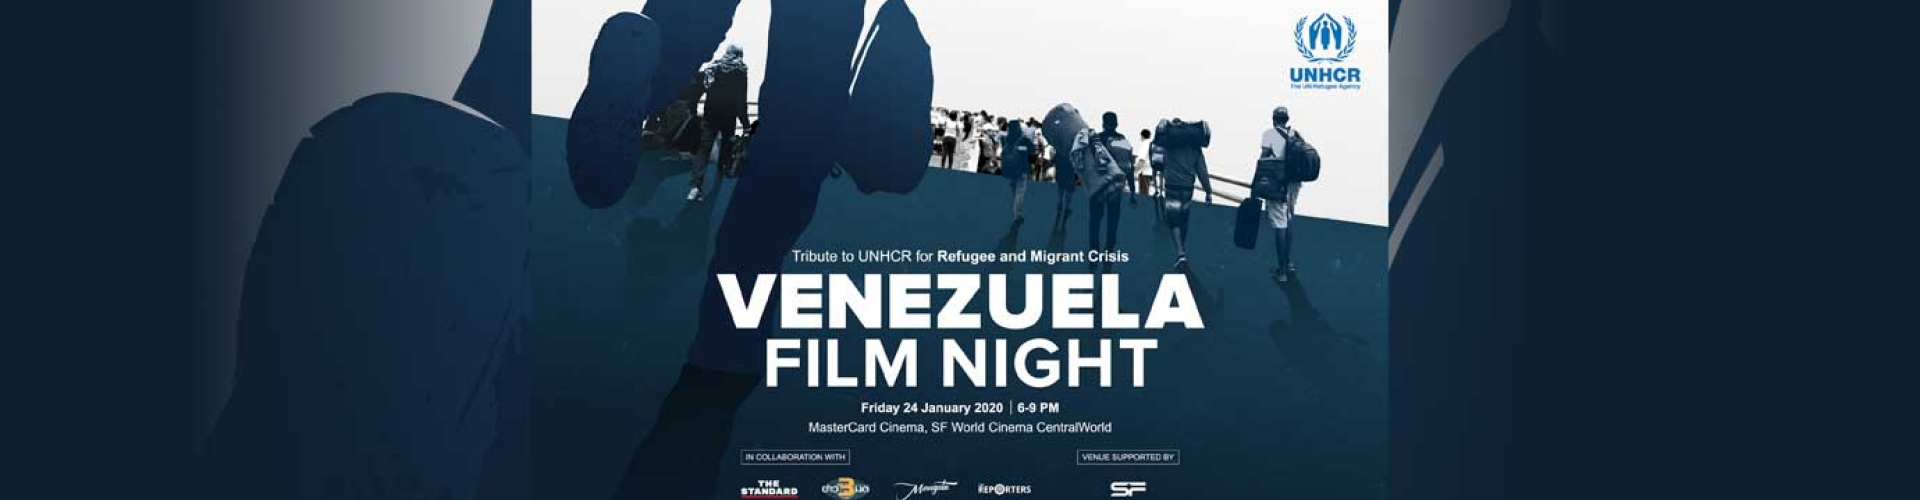 Venezuela Film Night : Tribute to UNHCR for Venezuelan Refugee and Migrant Crisis